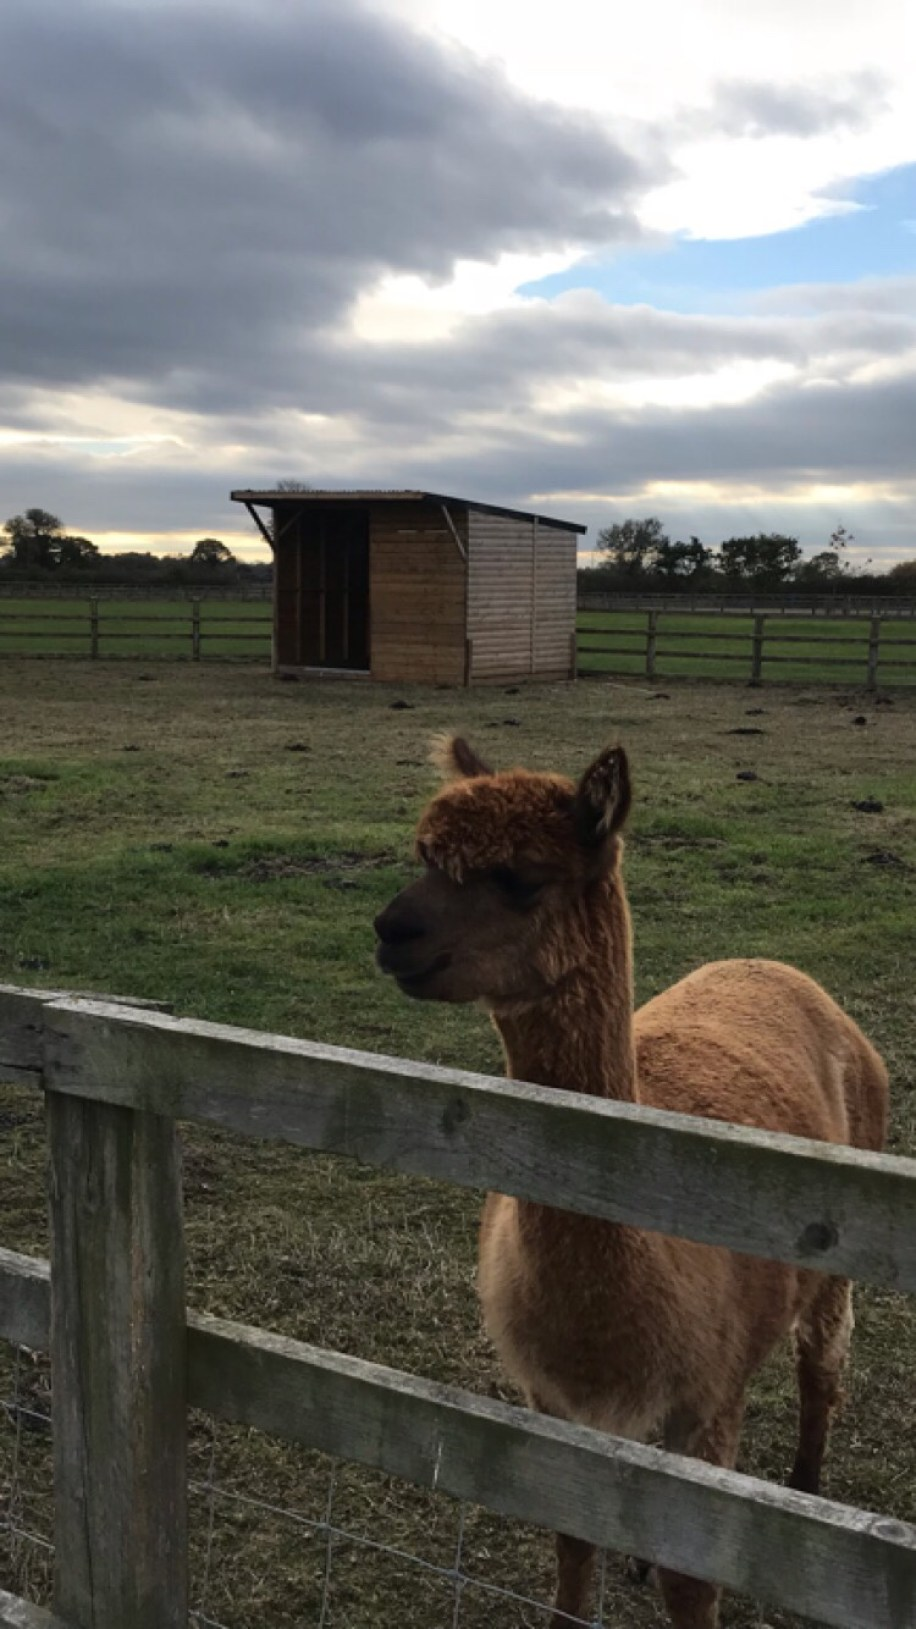 llama at the farm